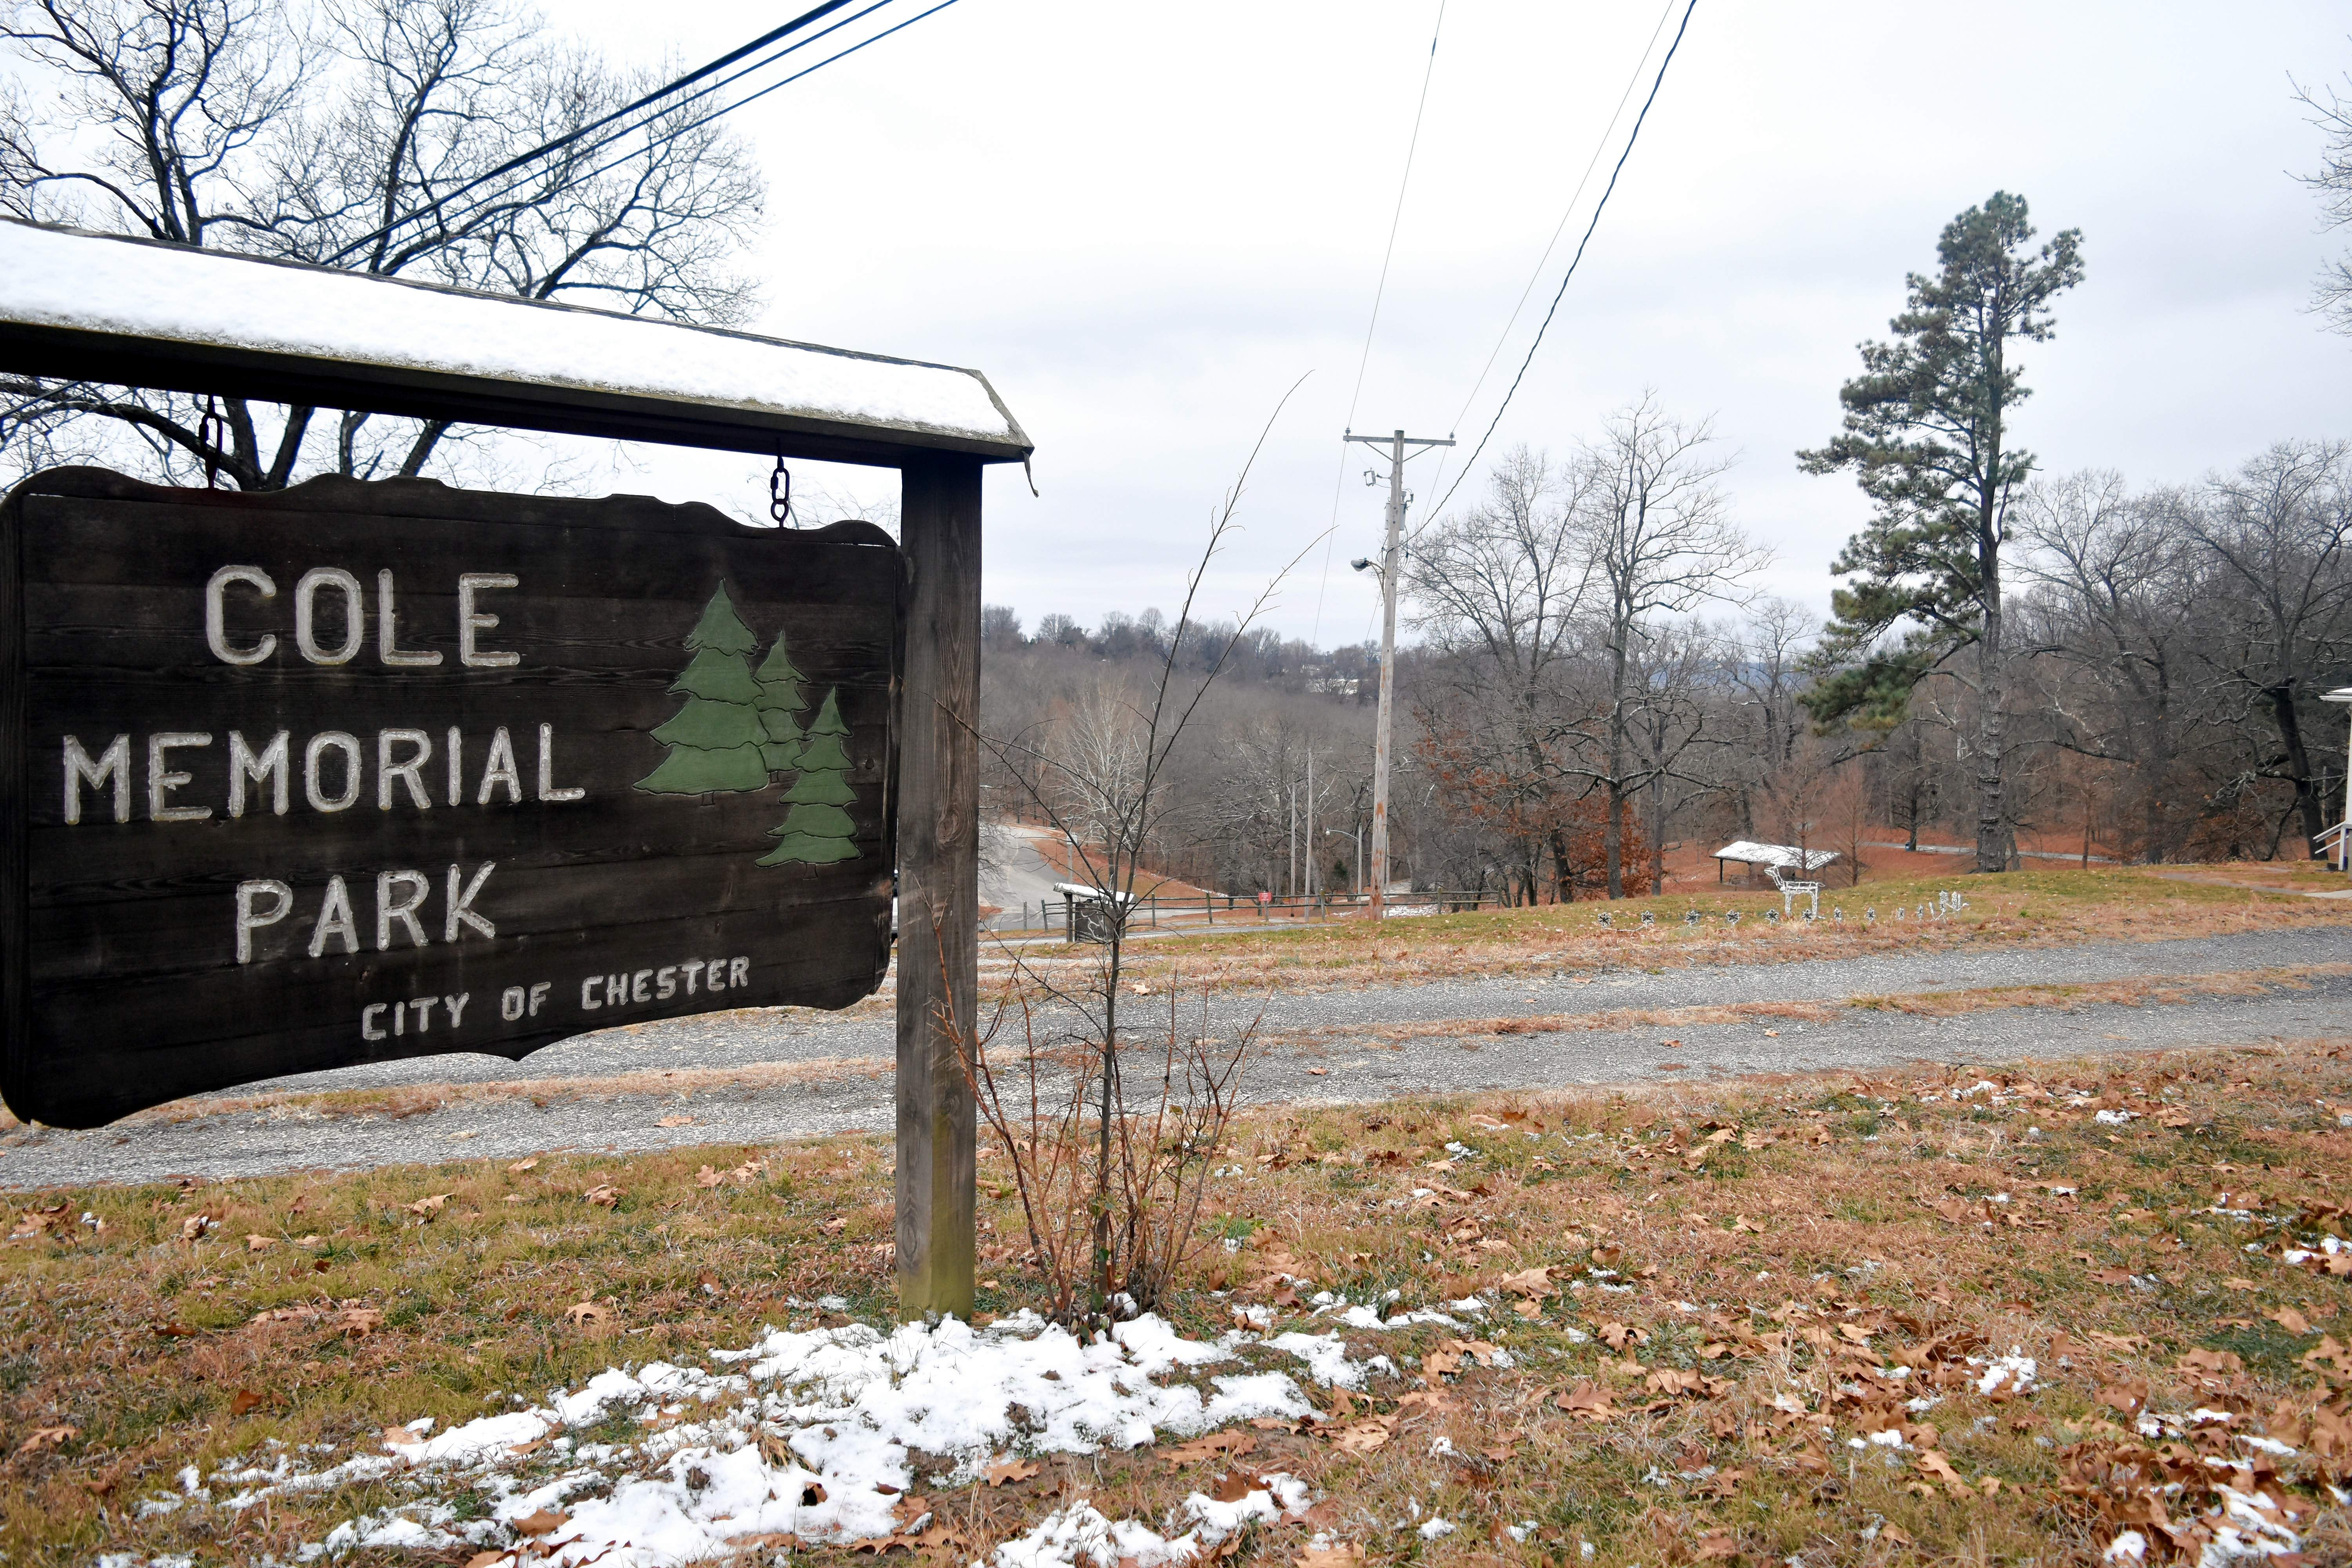 """Cole Memorial Park in Chester will be the starting point of a 57-mile, two-state """"Cannonball Ride"""" bicycle race on Feb. 3."""